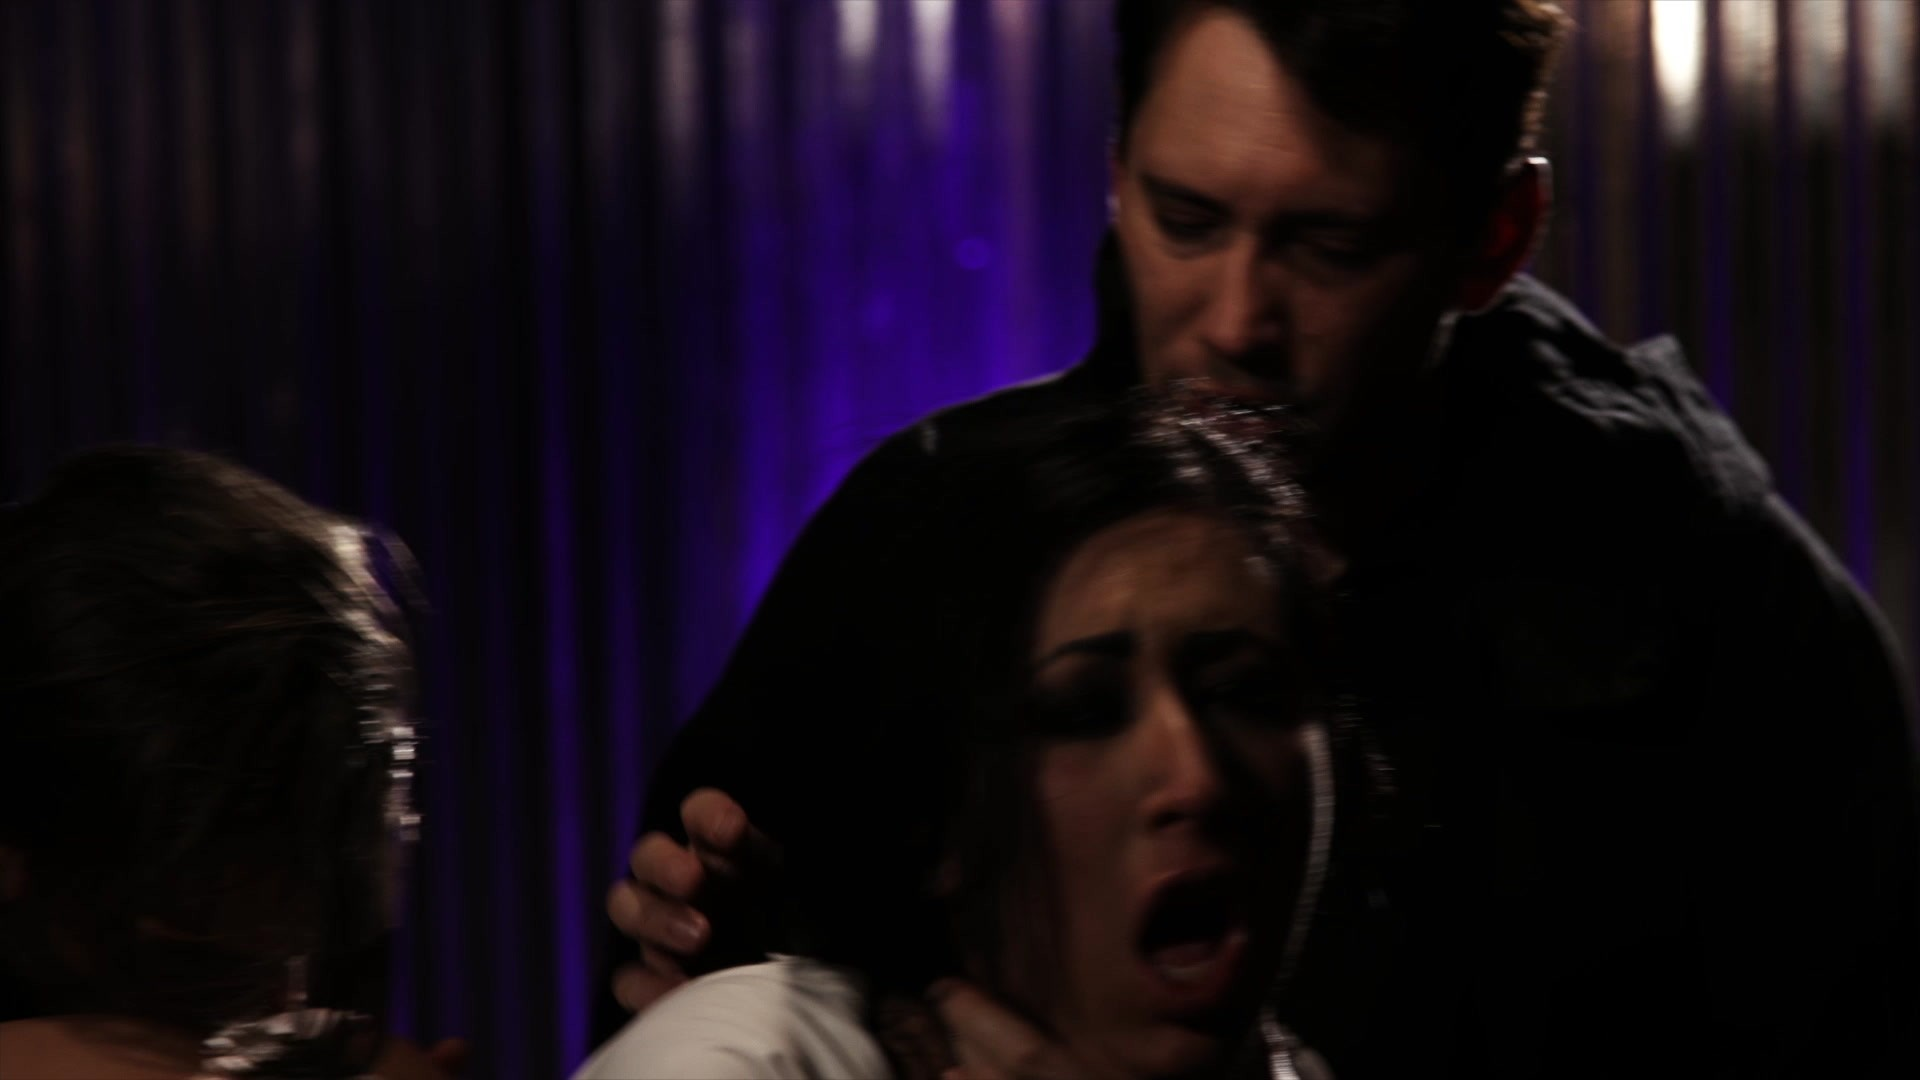 Scene with Tommy Pistol, Lily Lane and Owen Gray - image 7 out of 20